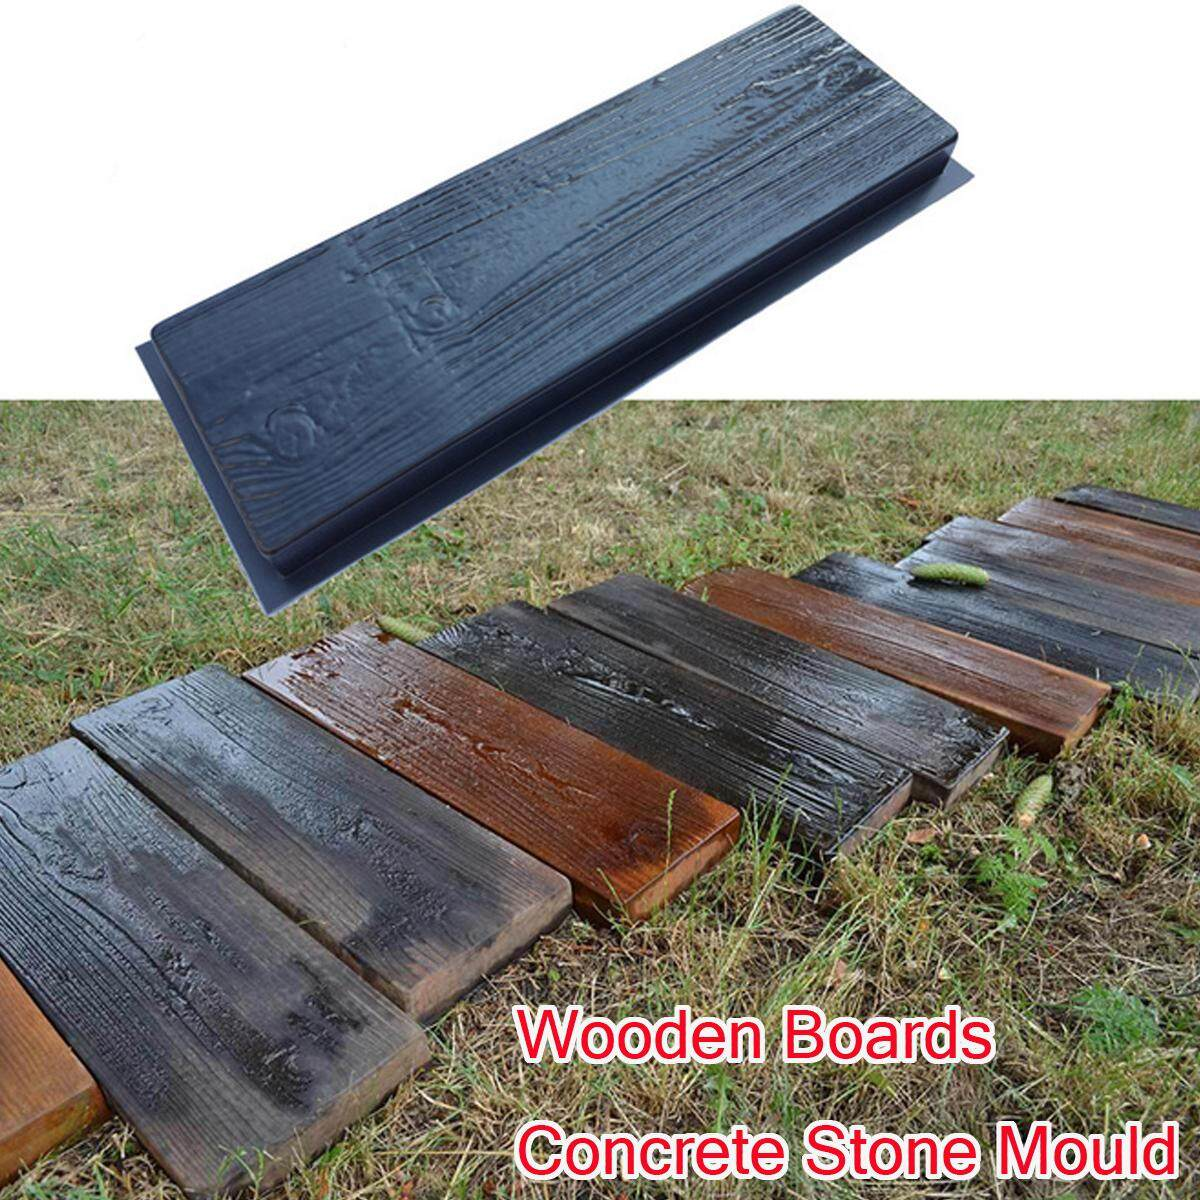 Old Wooden Boards Concrete Stone Mould Garden Stepping Stone Path Patio